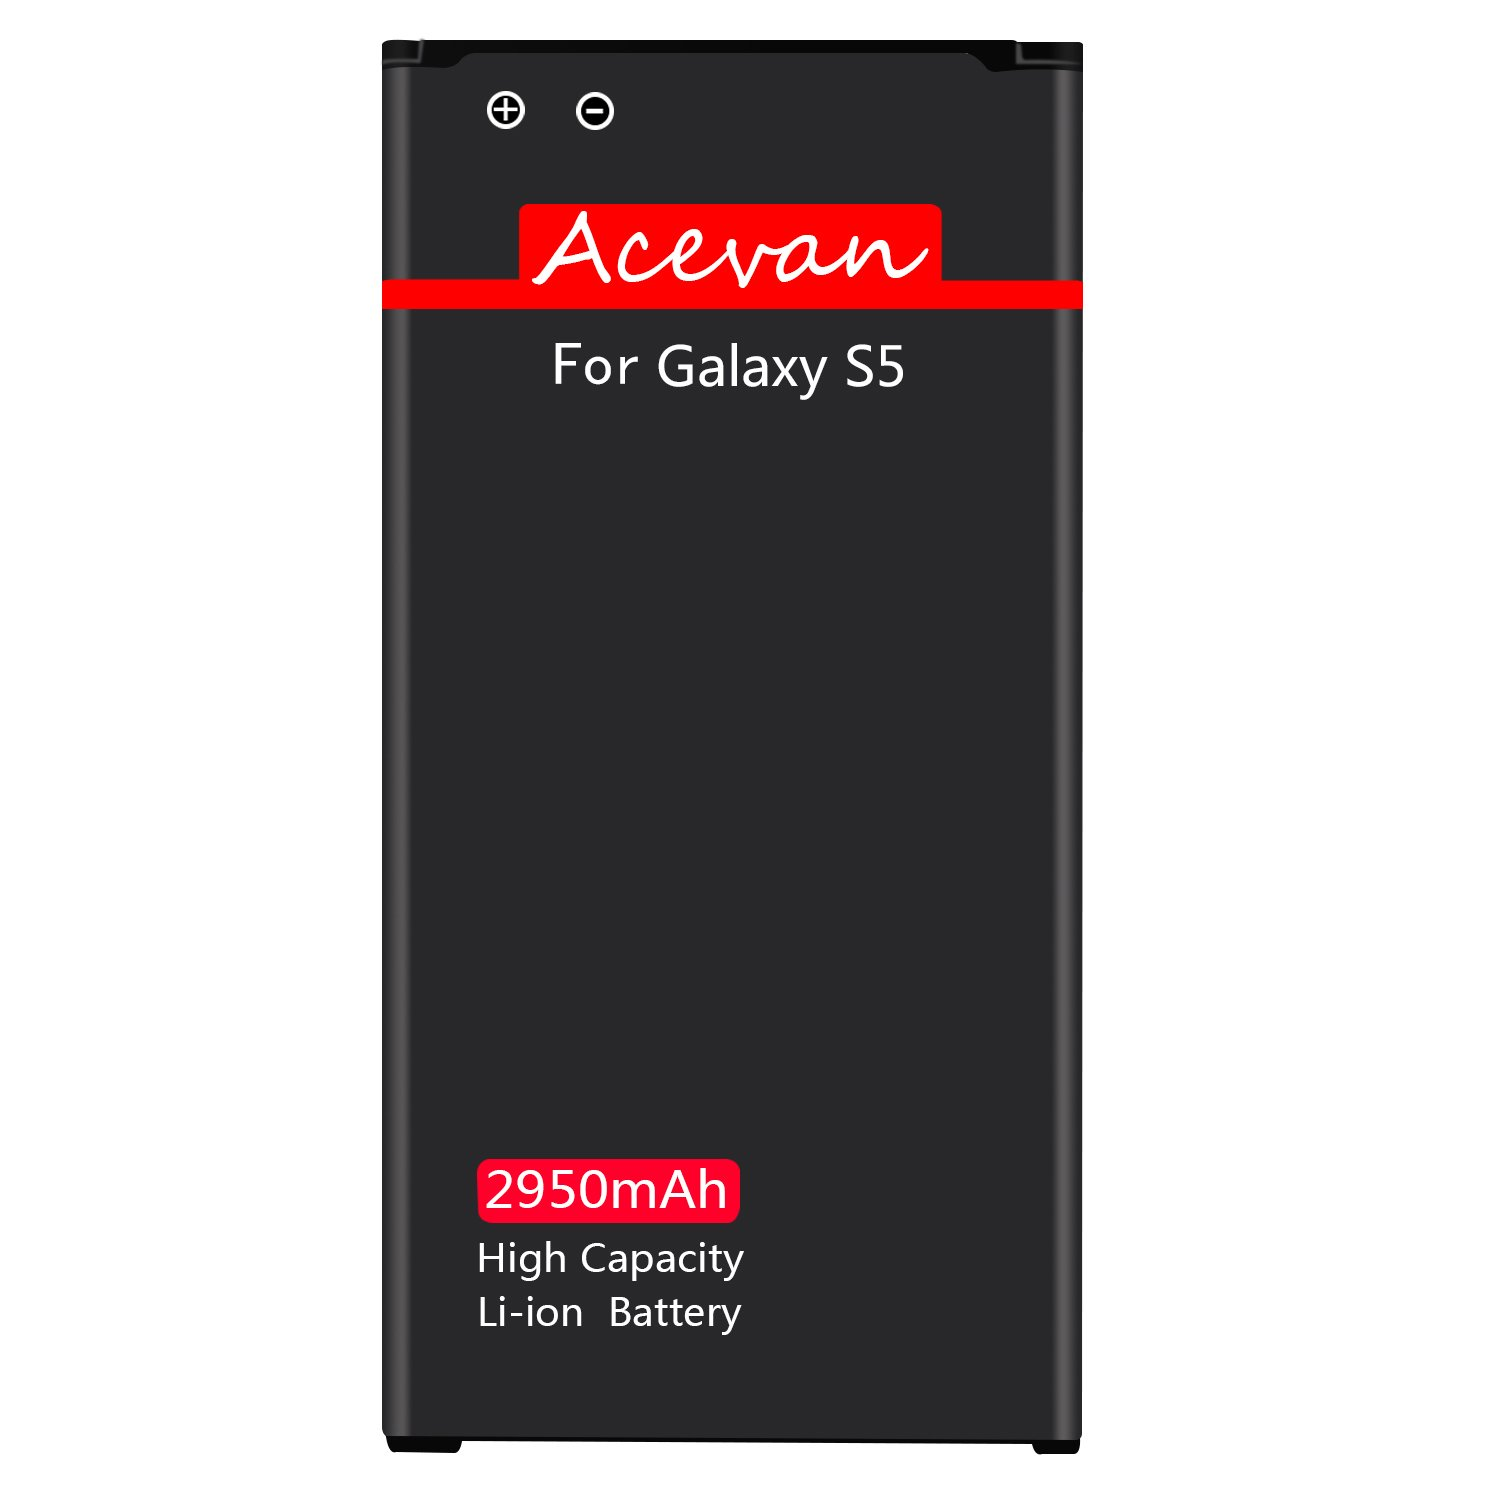 Galaxy S5 Battery Acevan 2950mAh Li-ion Battery Replacement for Samsung Galaxy S5, Verizon G900V, Sprint G900P, T-Mobile G900T, AT&T G900A, G900F, G900H, G900R4, I9600 [3 Year Warranty] by Acevan (Image #7)